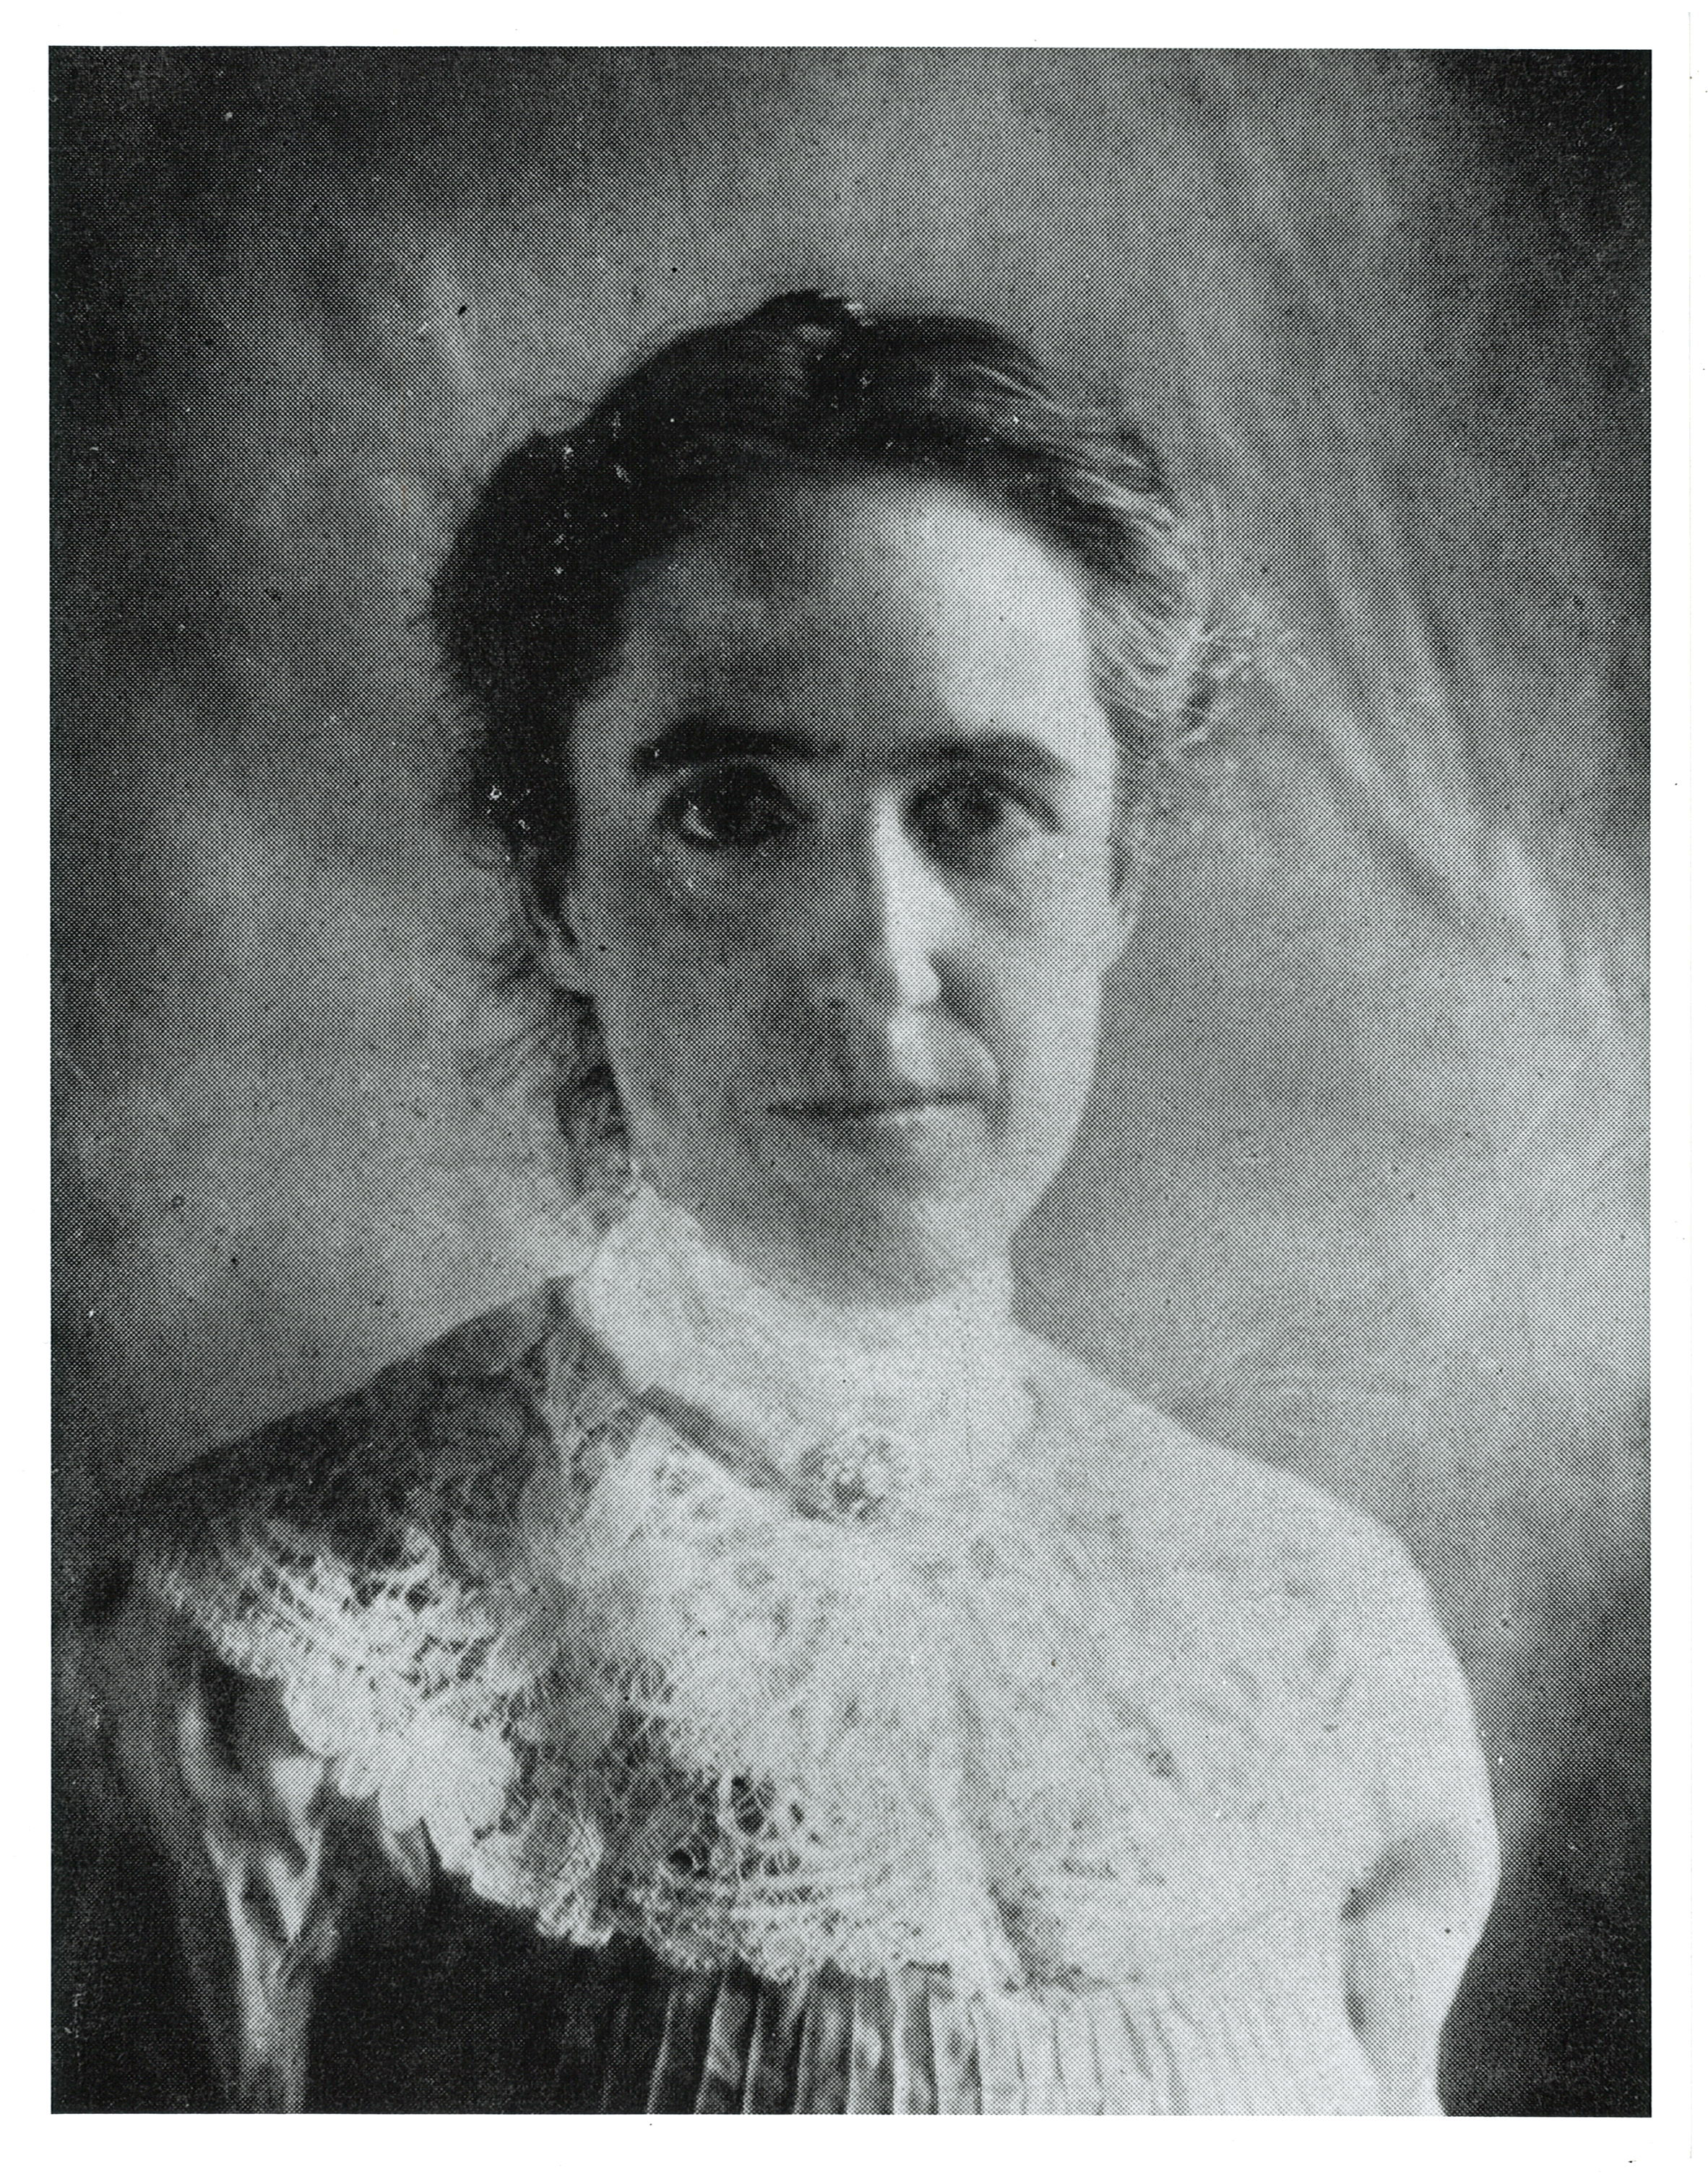 Head-and-shoulders black and white photograph of Henrietta Leavitt, age approximately 30 years old.